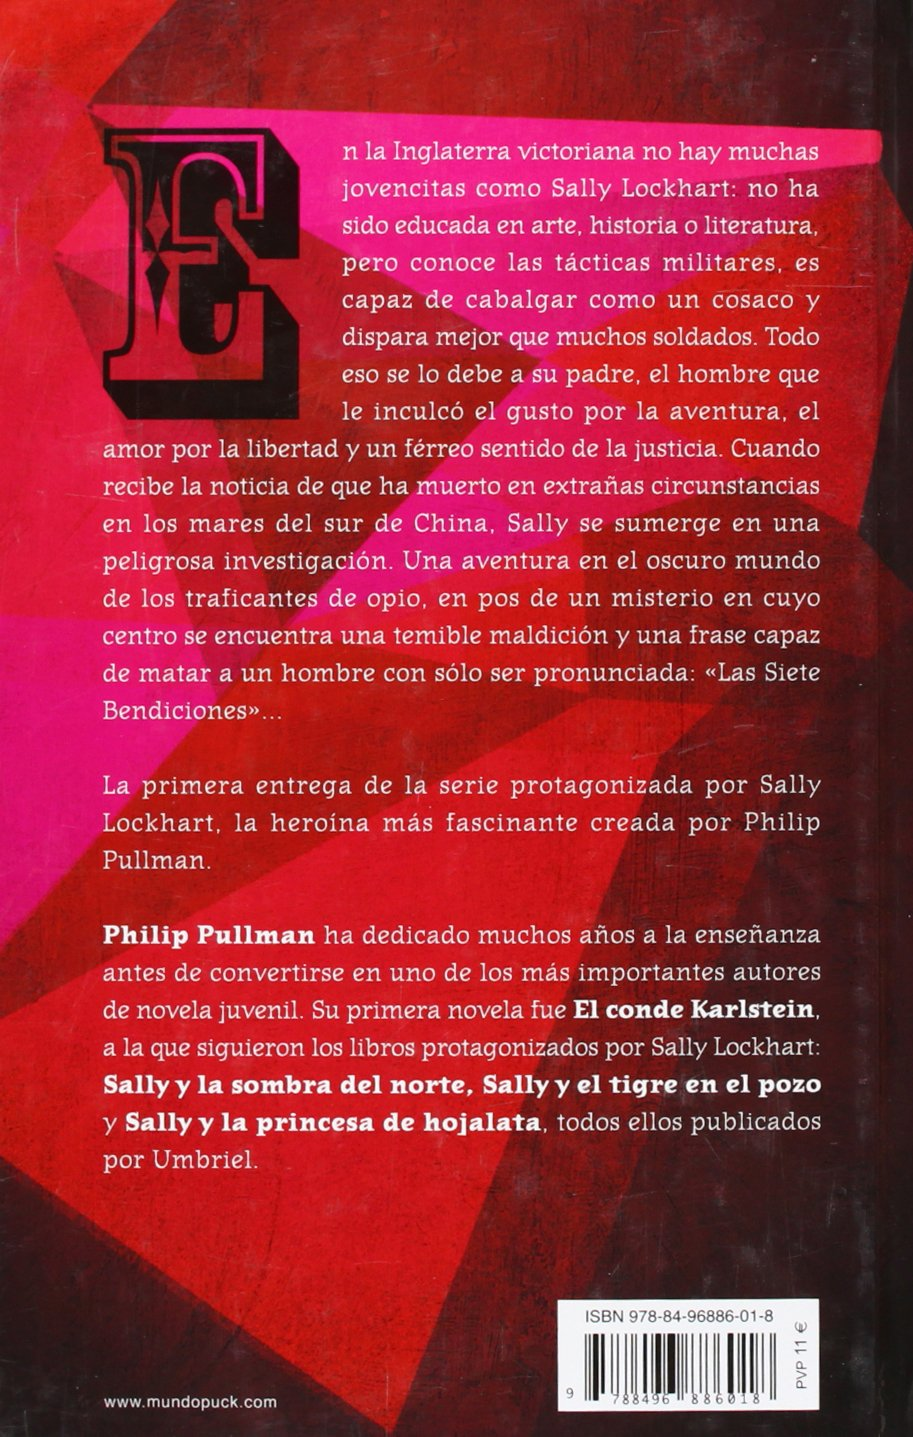 Amazon.com: SALLY Y LA MALDICION DEL RUBI (Sally Lockhart Mysteries) (Spanish Edition) (9788496886018): Philip Pullman: Books